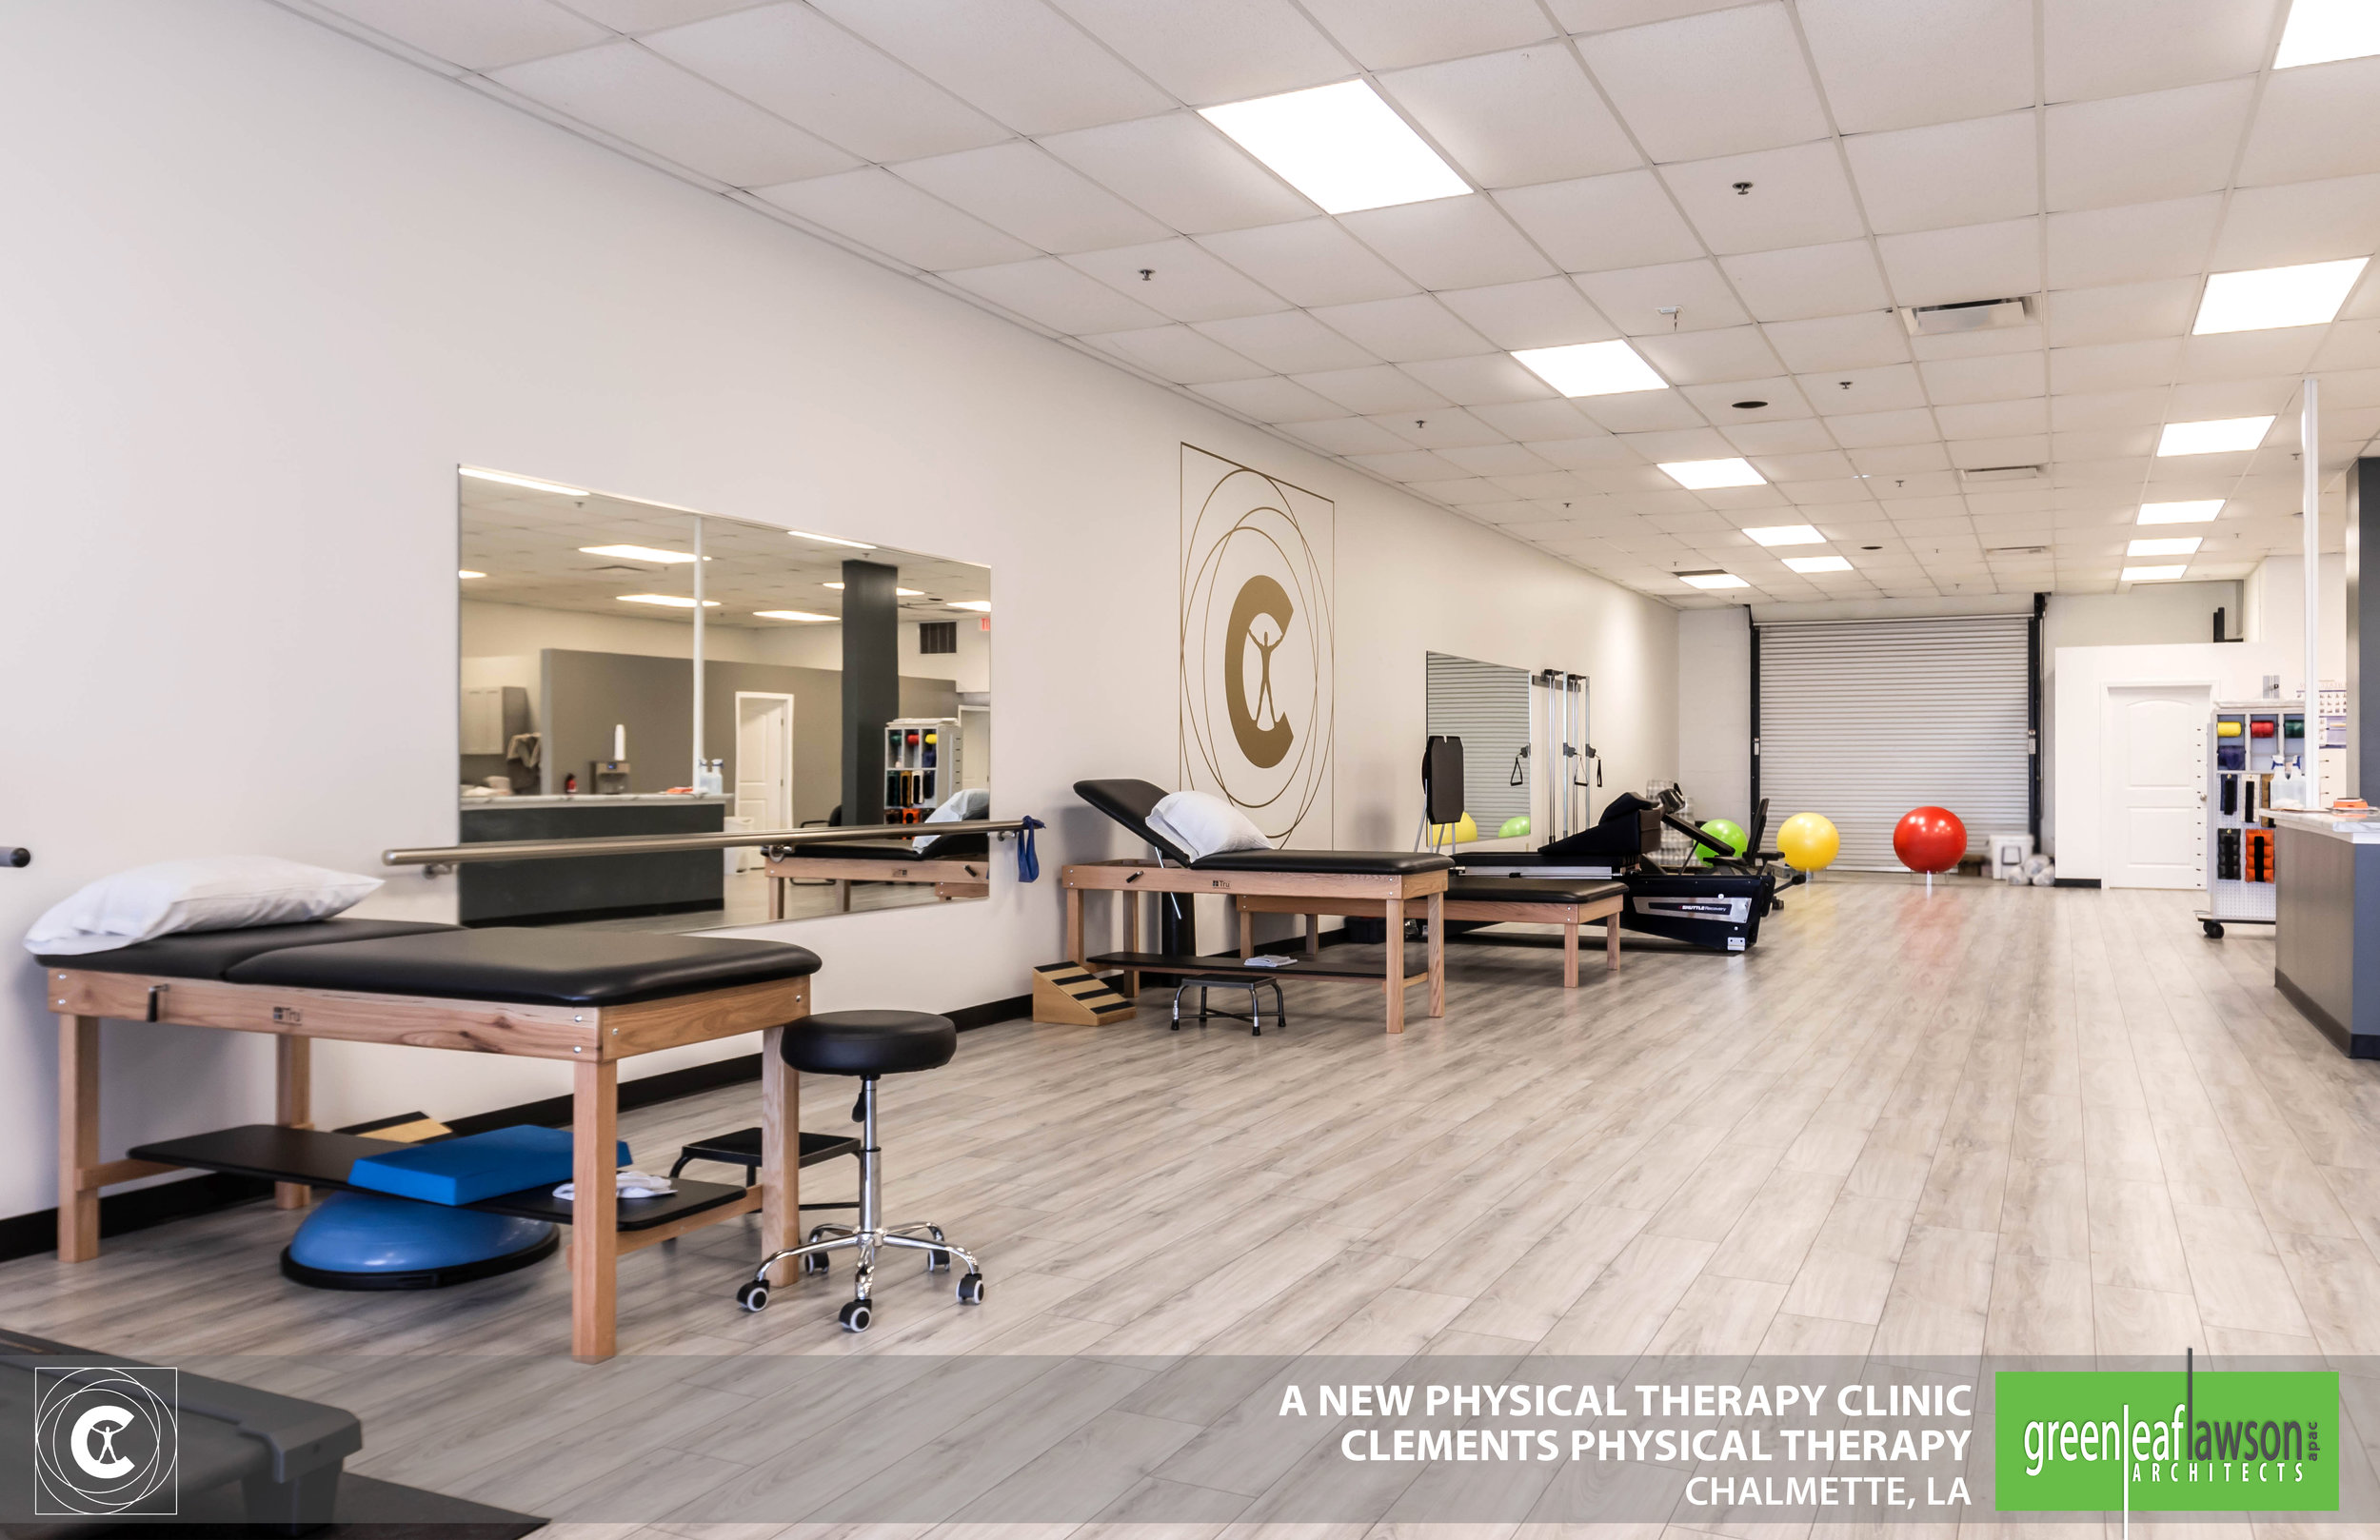 Clements-Physical-Therapy-Greenleaf-Lawson-Architects-2.jpg